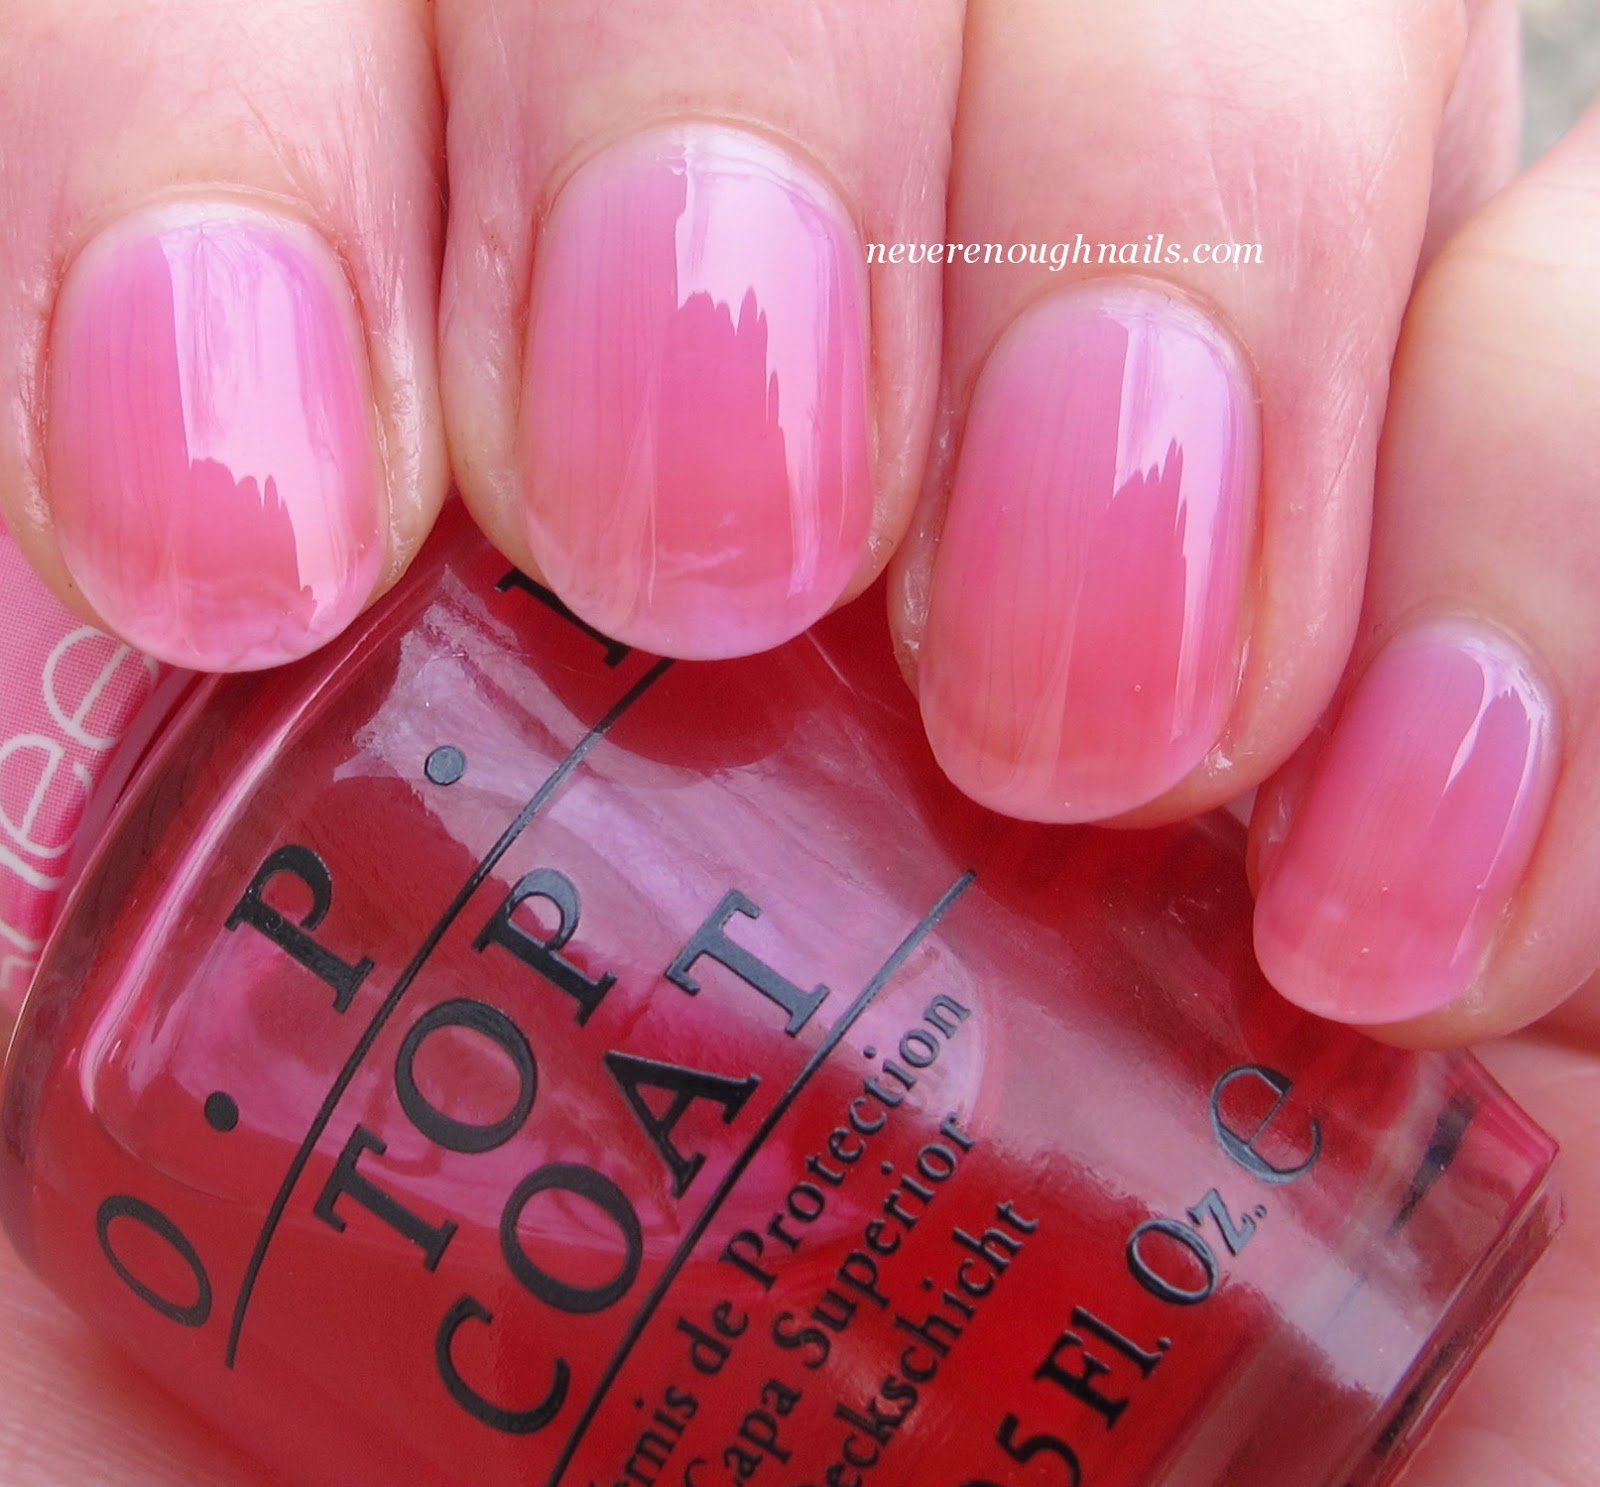 Never Enough Nails: OPI Sheer Tints Swatches and Play Time!